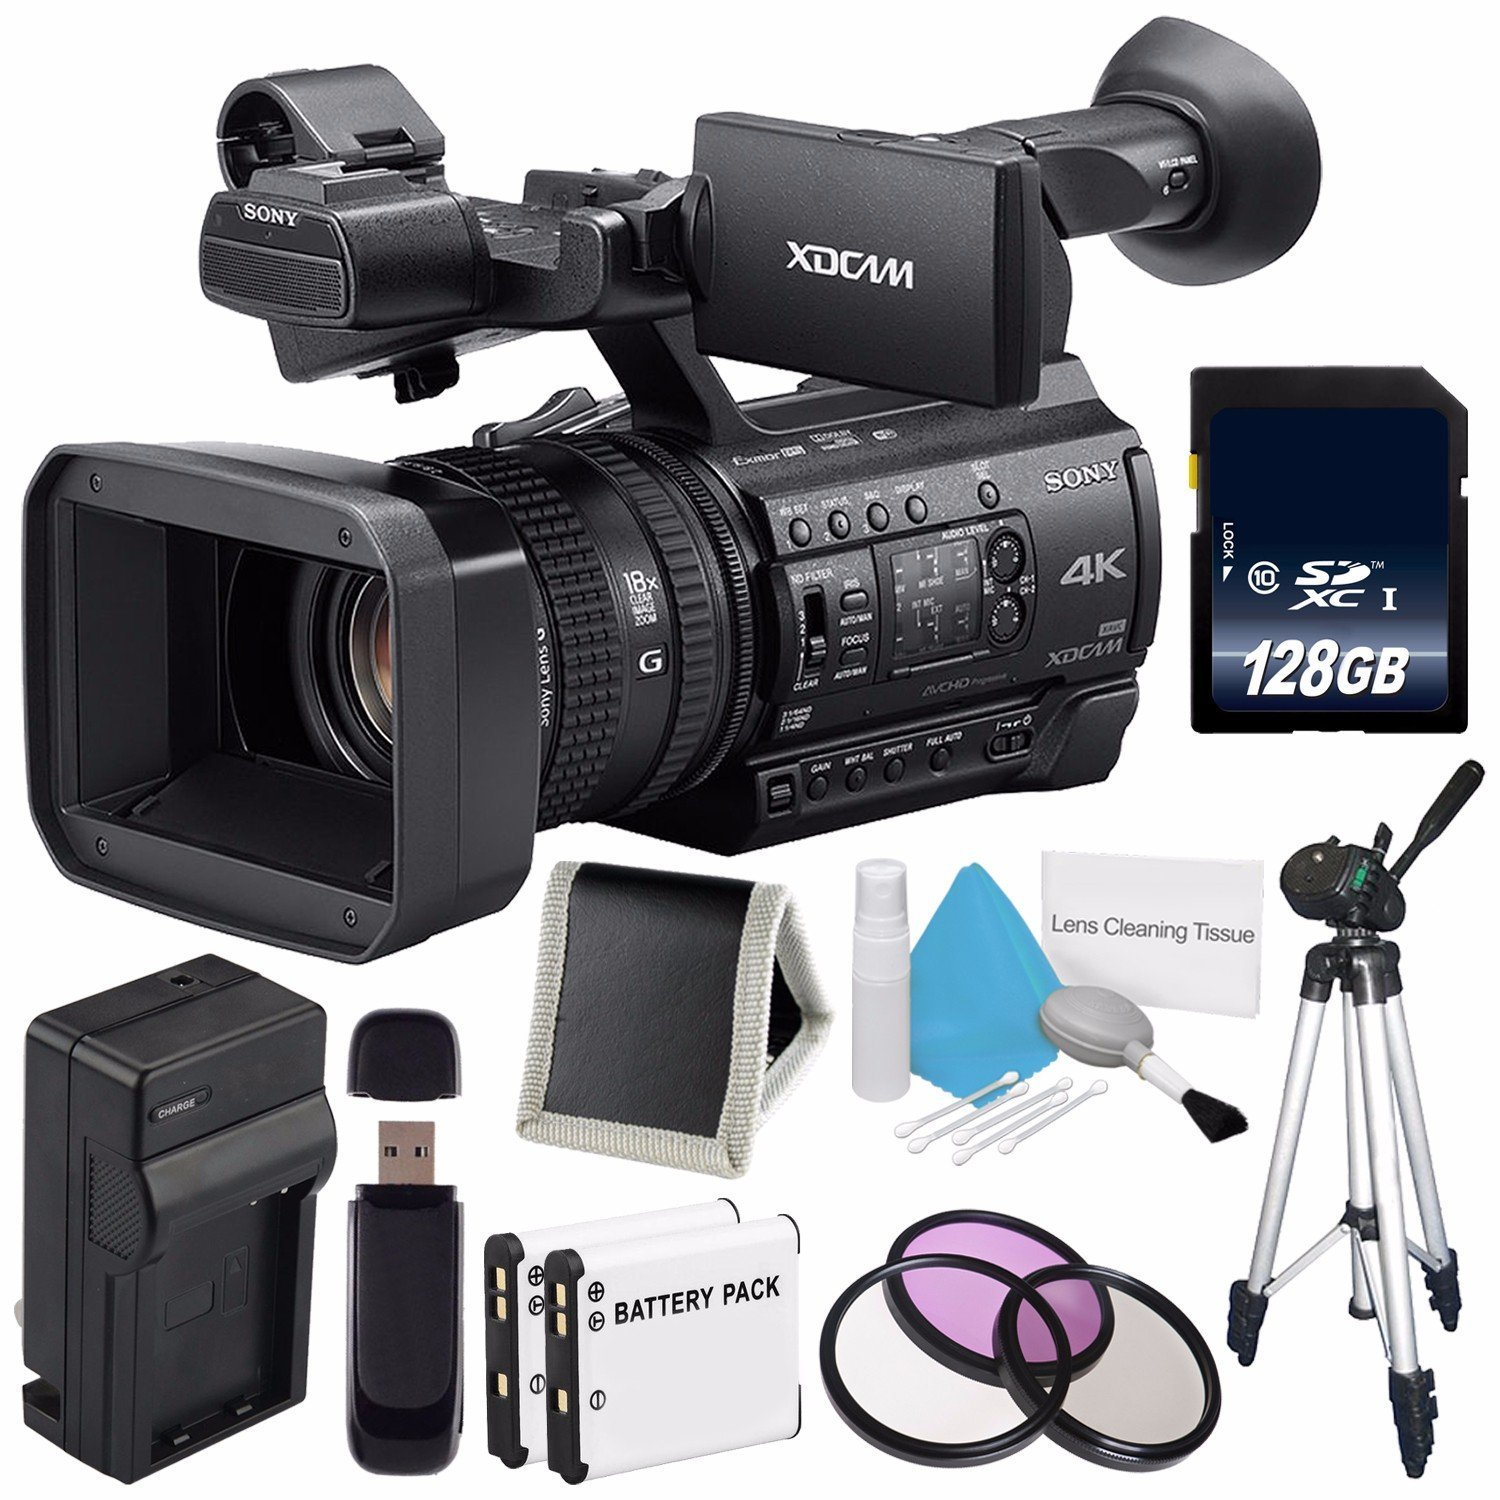 Sony PXW-Z150 4K XDCAM Camcorder (International Model) No Warranty + 128GB SDXC Class 10 Memory Card + NP-F970 Rechargeable Lithium Ion Battery + Charger Kit for Sony NP-F970 Bundle